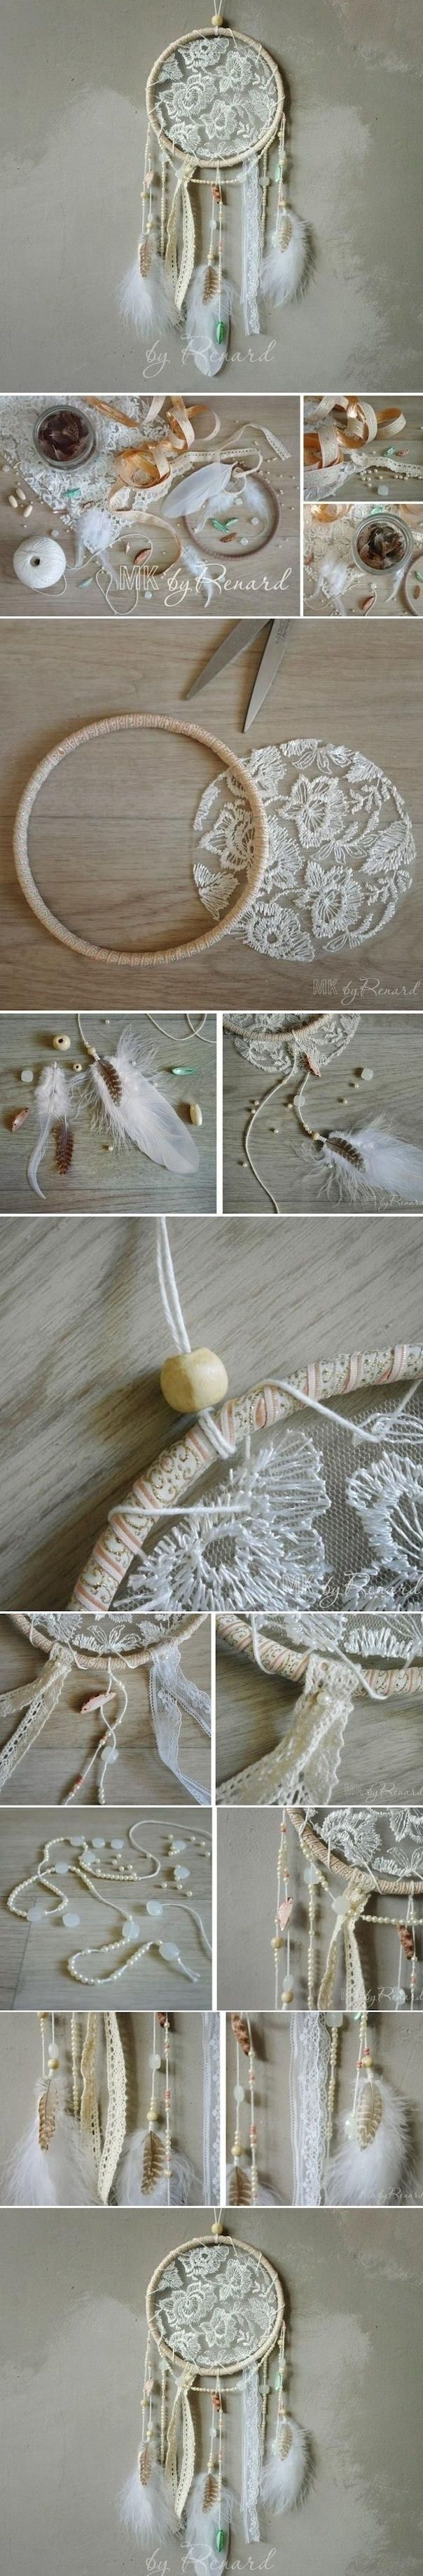 Diy dream catcher pictures photos and images for facebook diy dream catcher bracelets diy crafts easy crafts craft idea crafts ideas diy ideas diy crafts diy idea do it yourself diy projects diy craft handmade diy solutioingenieria Image collections